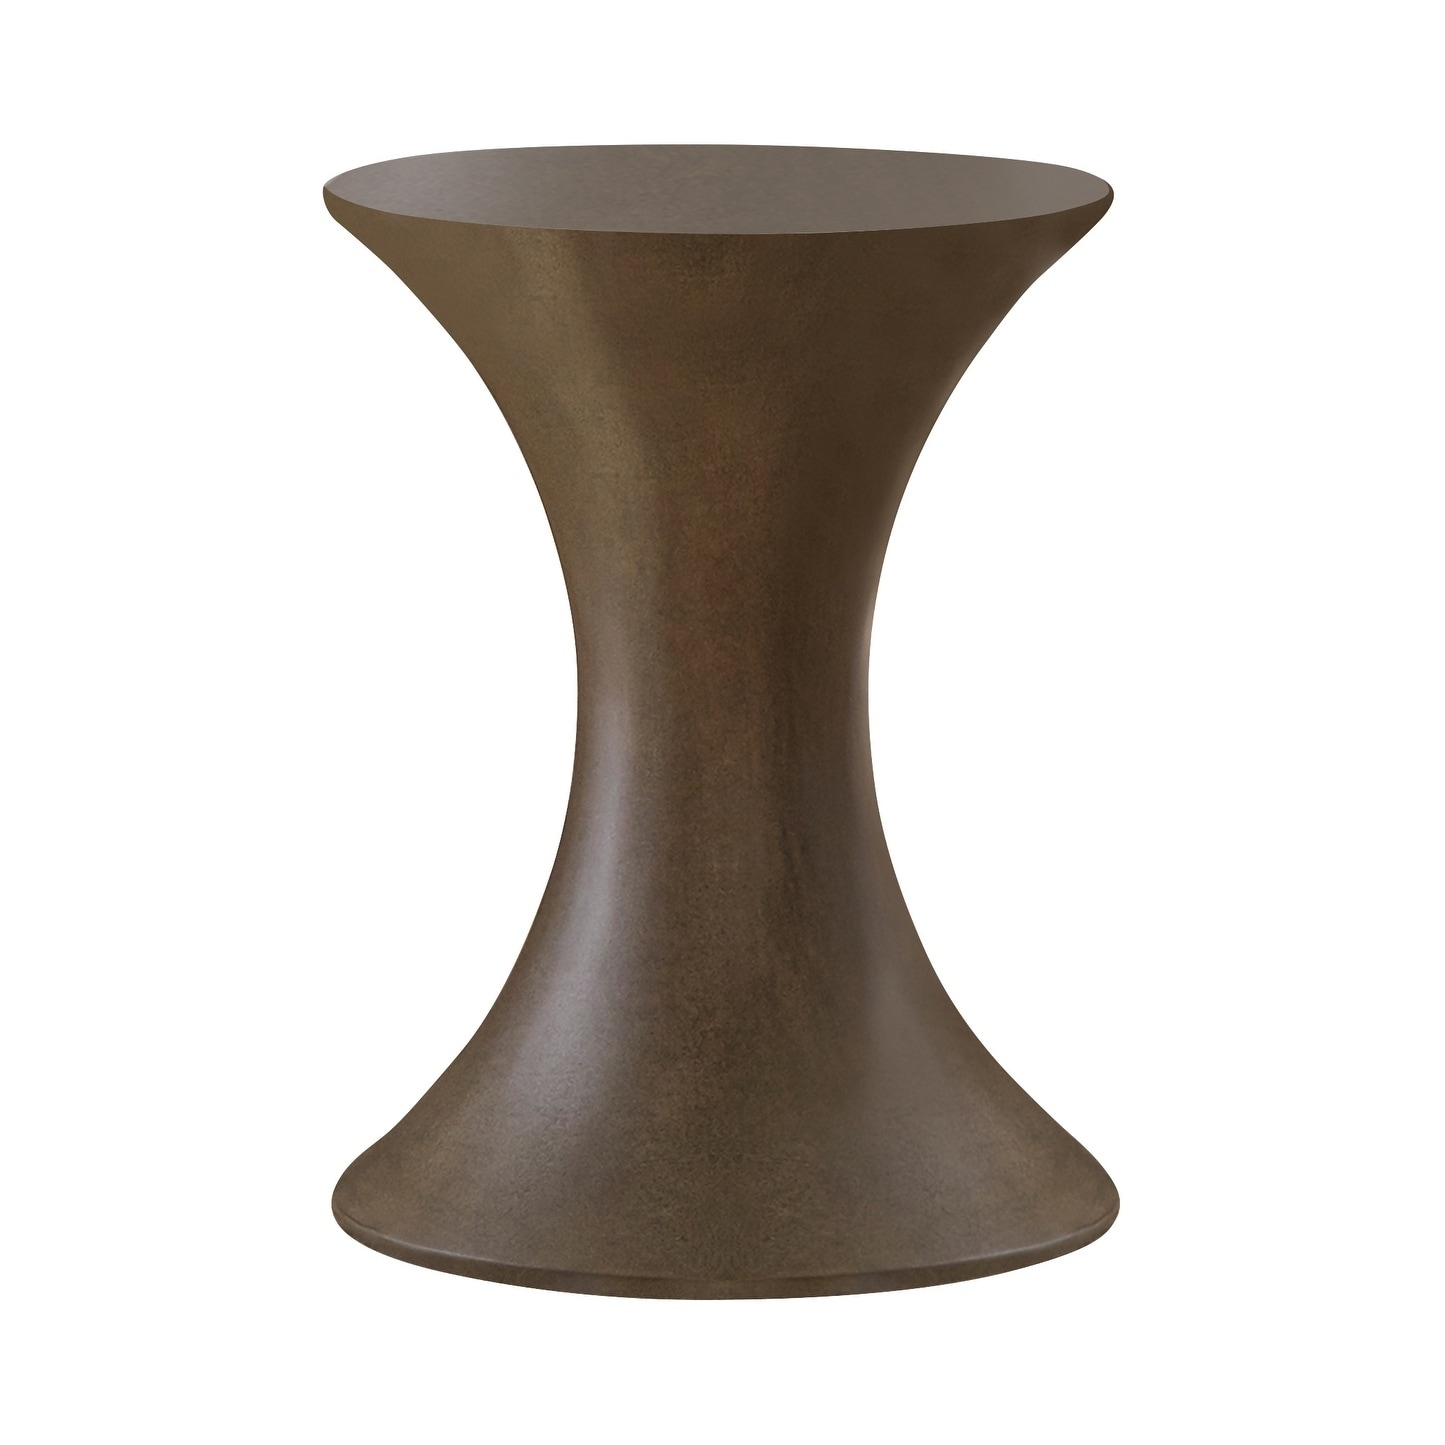 Copper Grove Delft Round Bronze Dining Table Base Only Overstock 29303393